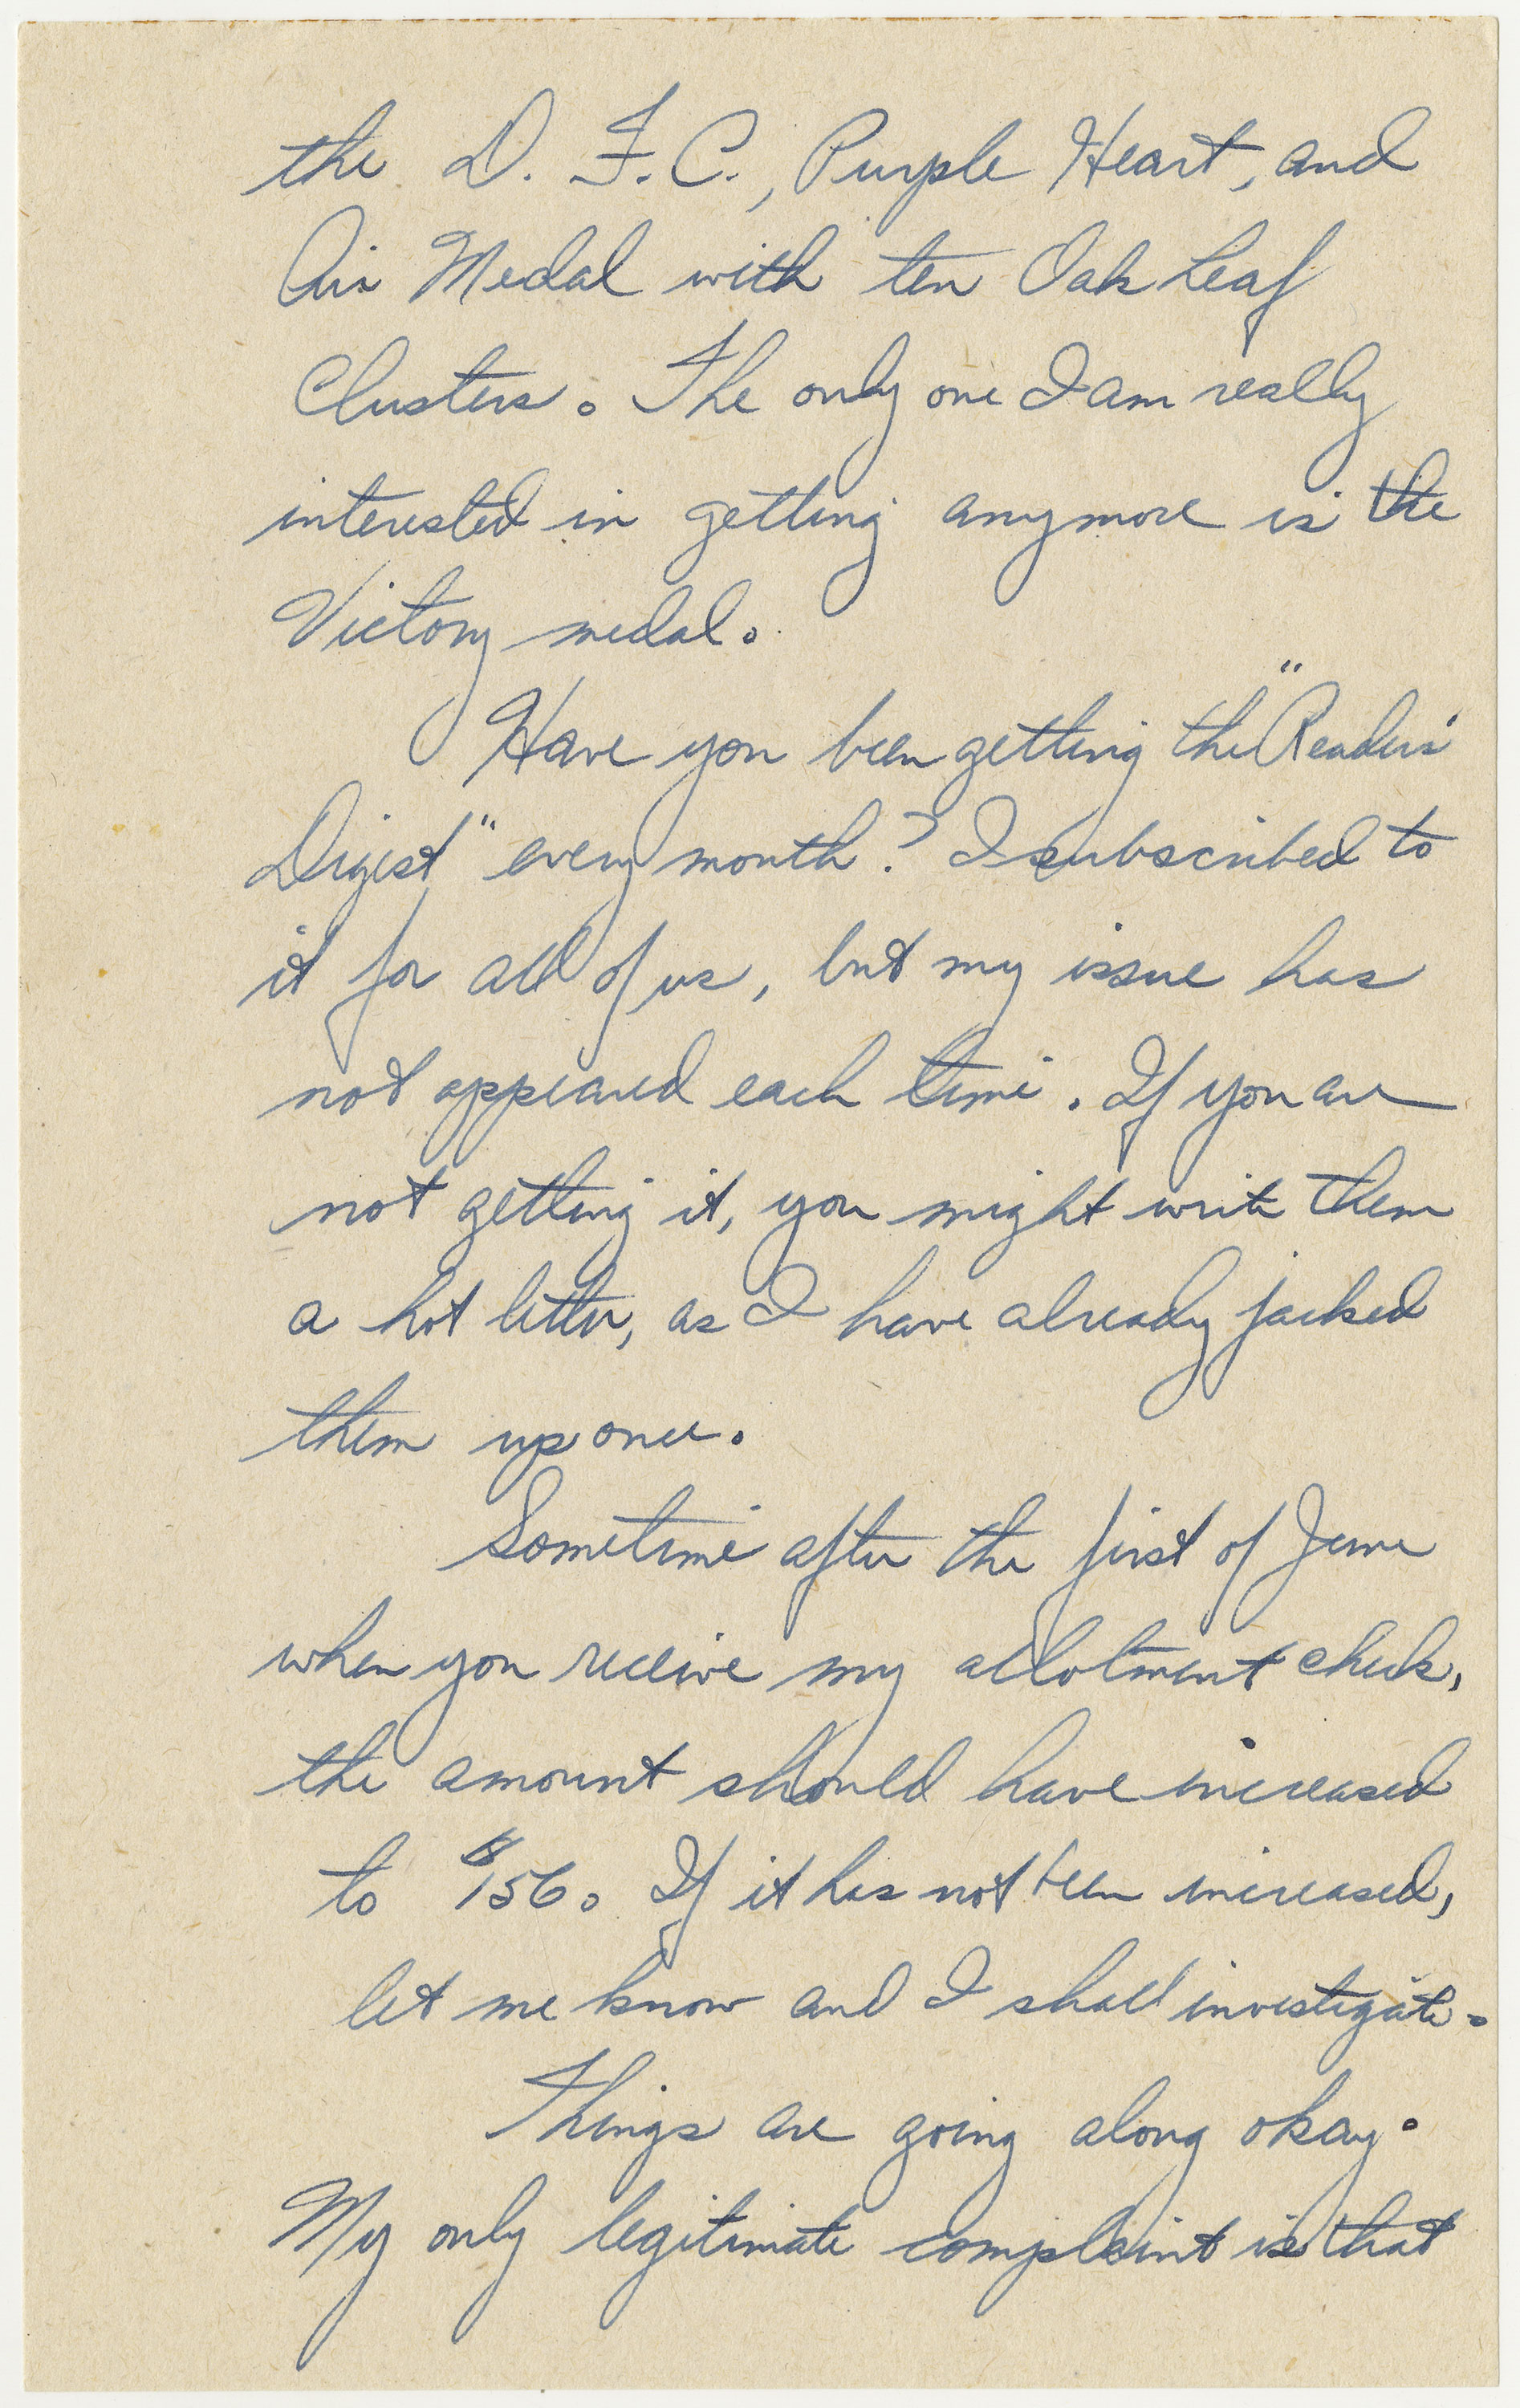 page 2 of letter written by Bischoff on May 24, 1944